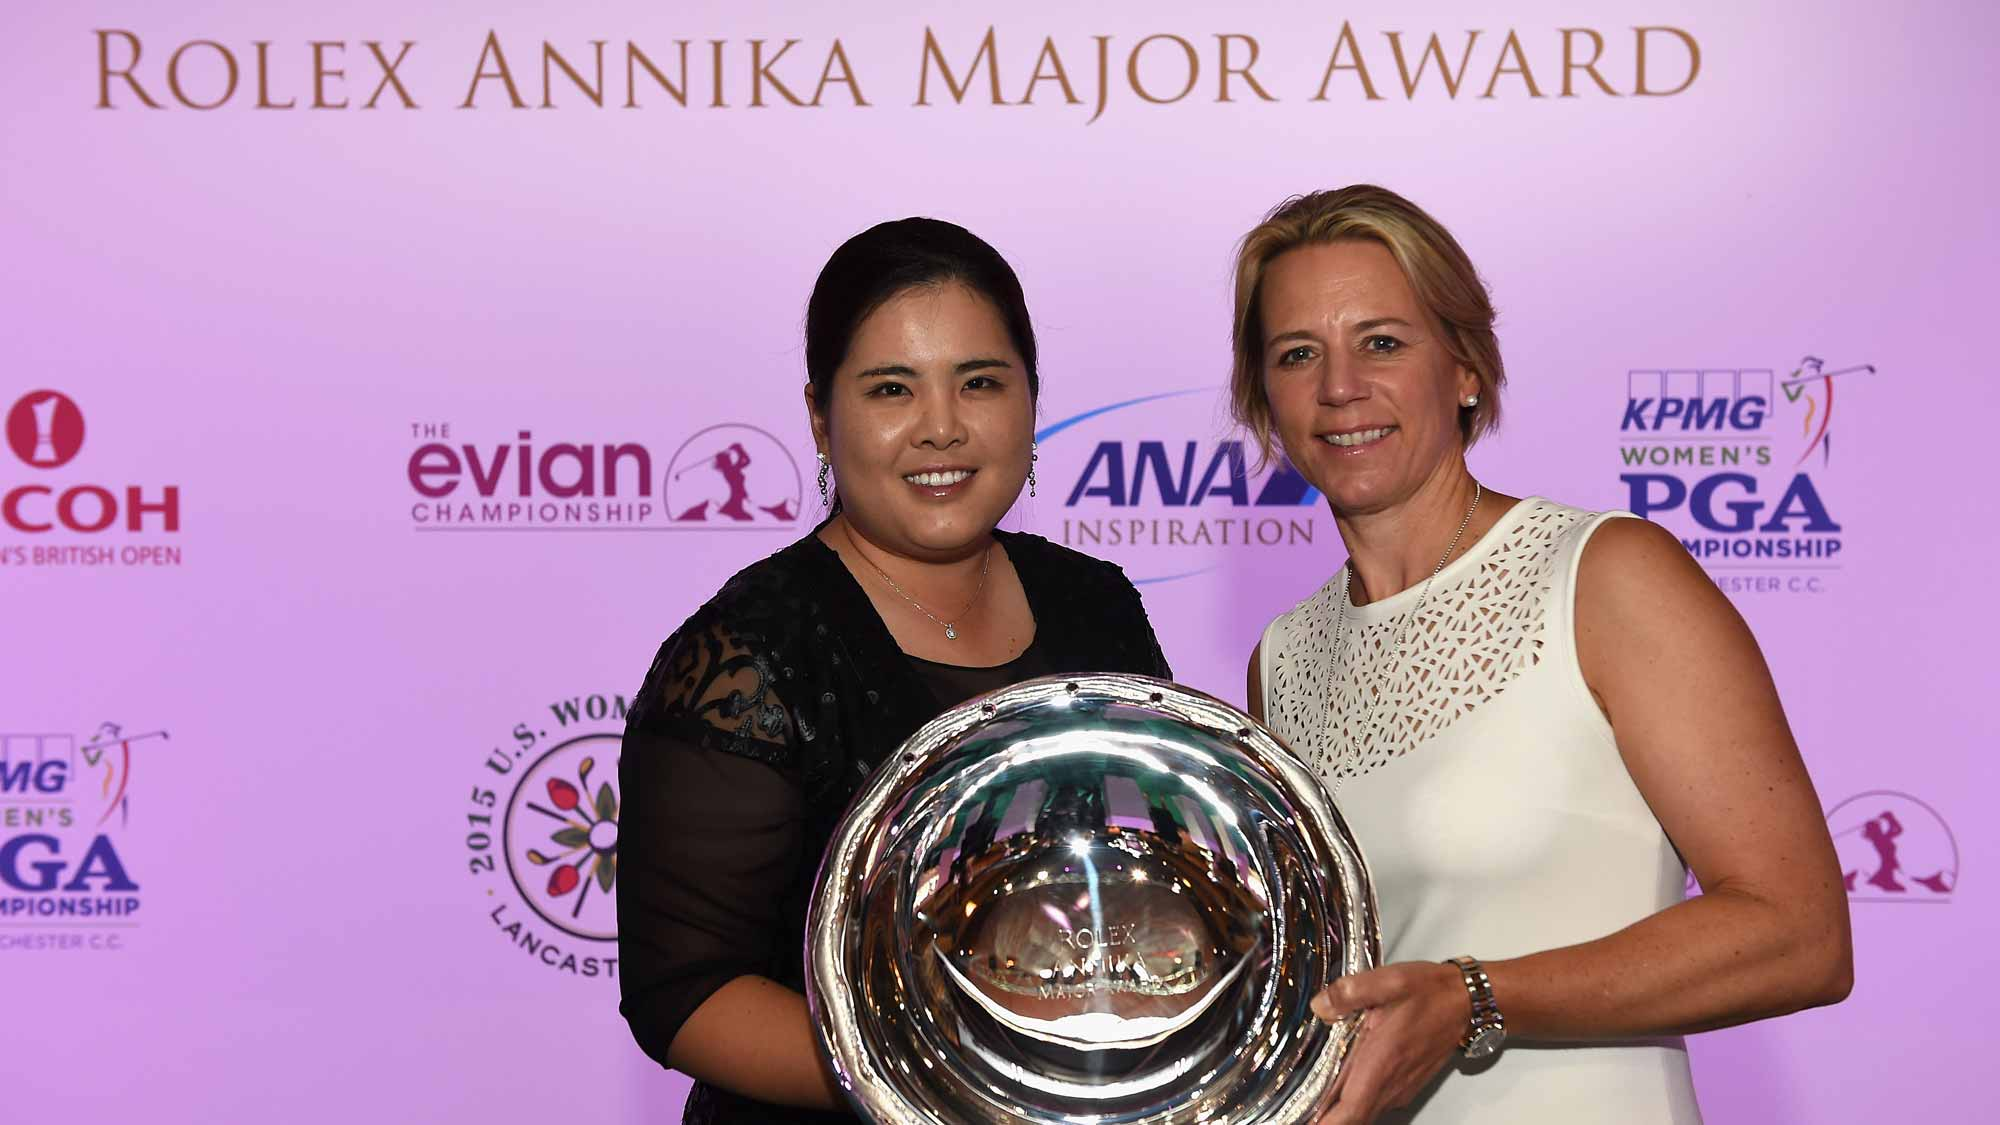 Inbee Park presented with the Rolex Annika Major Award by Annika Sorestam at the Rolex Award ceremony after the third round of the Evian Championship